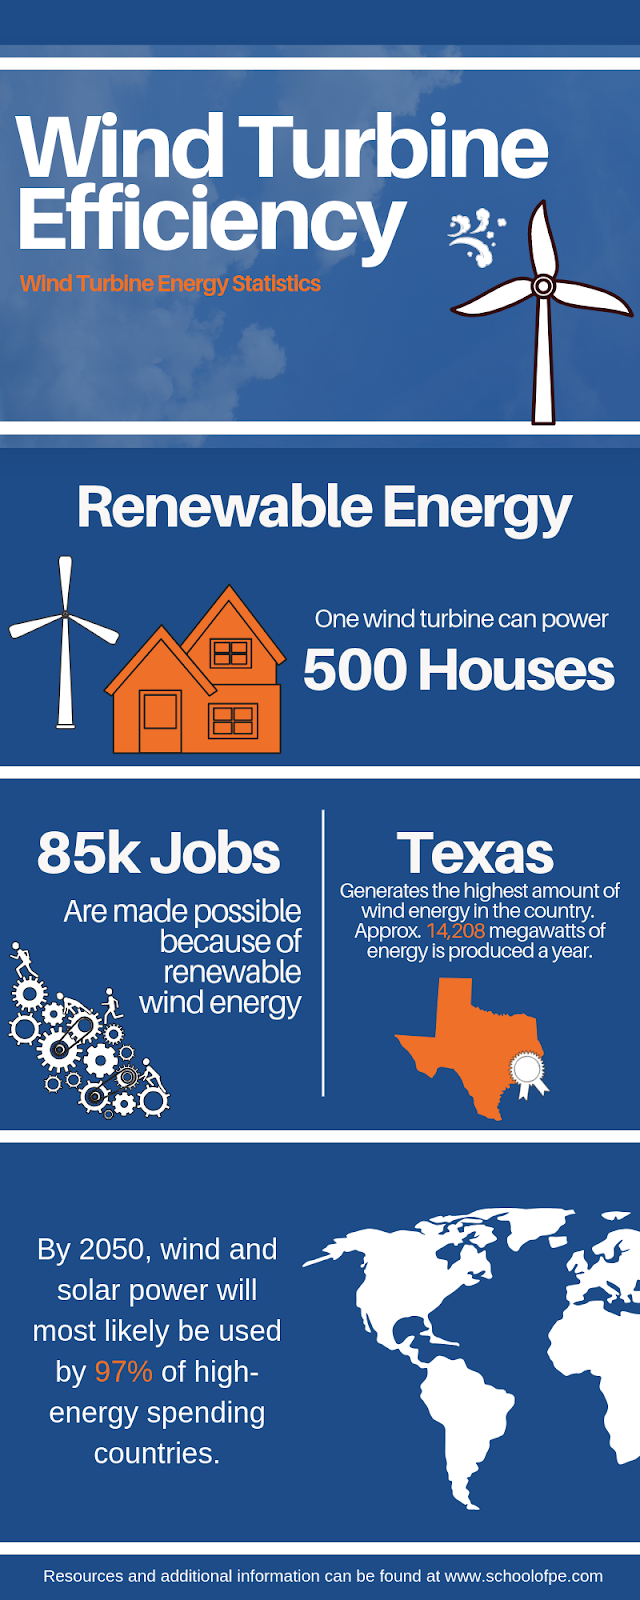 Environmental Engineering makes renewable energy possible. This infographic lays out wind turbine statistics and some pros of wind energy. School of PE offers exam review courses for professional environmental engineering.